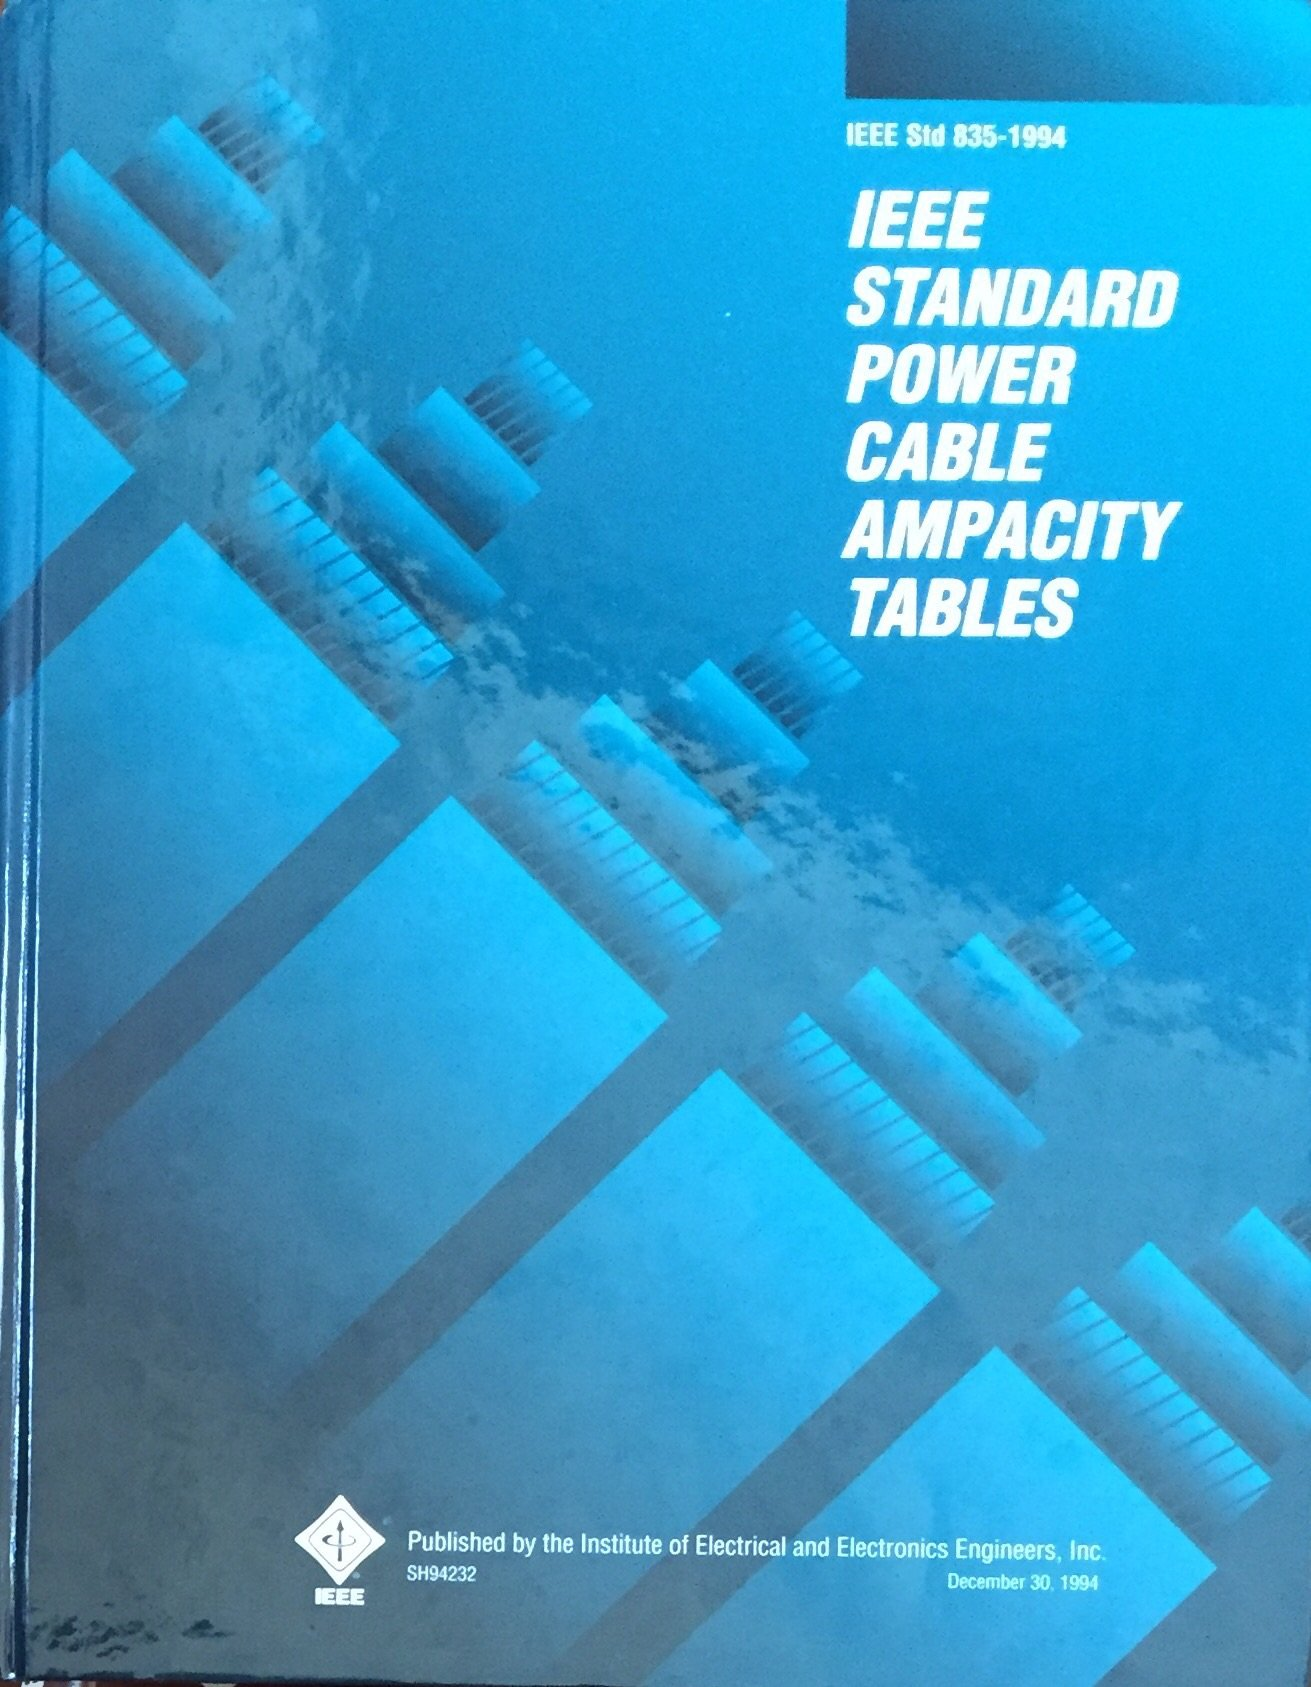 Ieee standard power cable ampacity tables amazon books keyboard keysfo Image collections